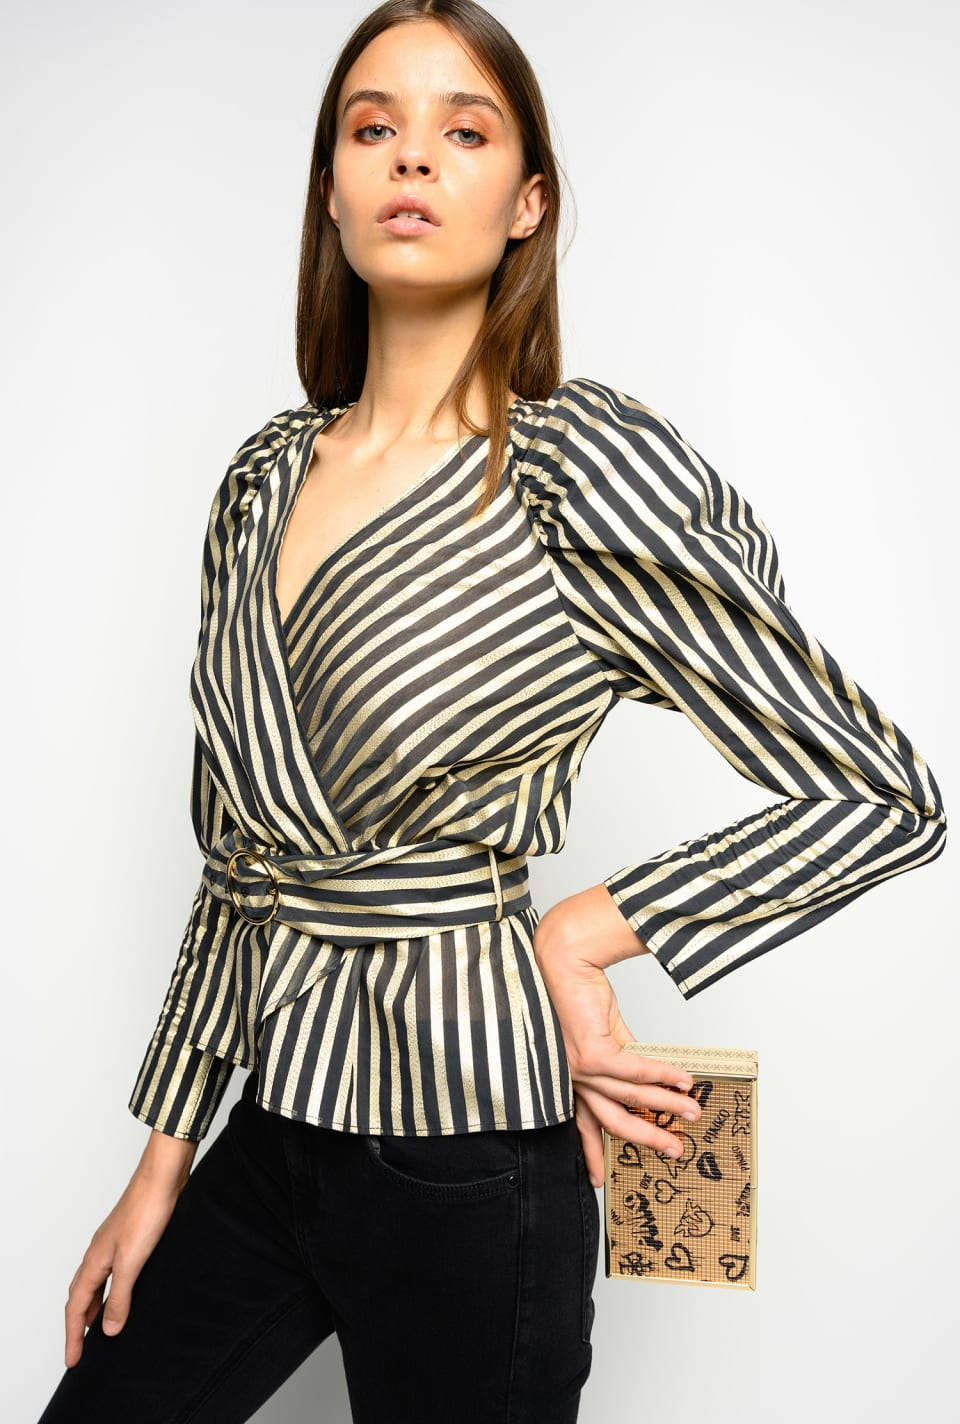 Lurex striped blouse with belt - Pinko